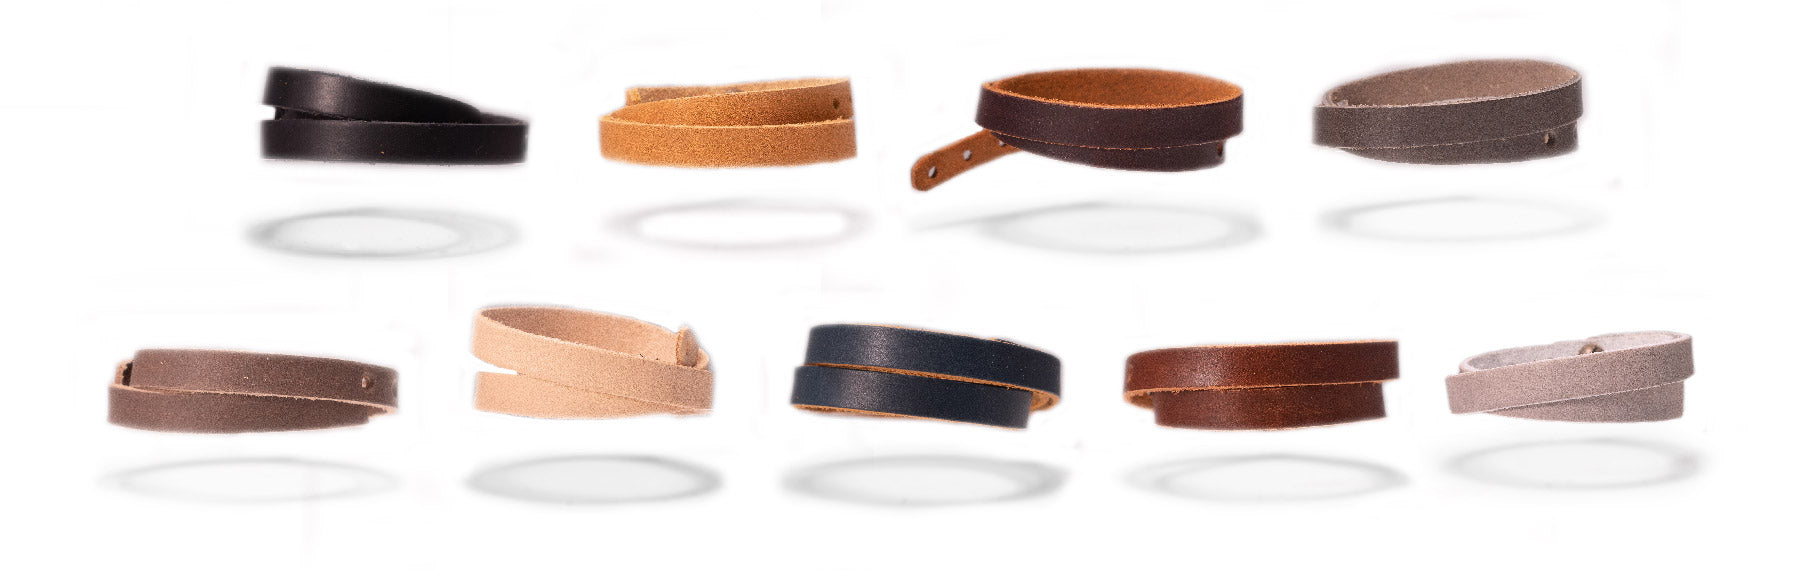 Leather wristband colors